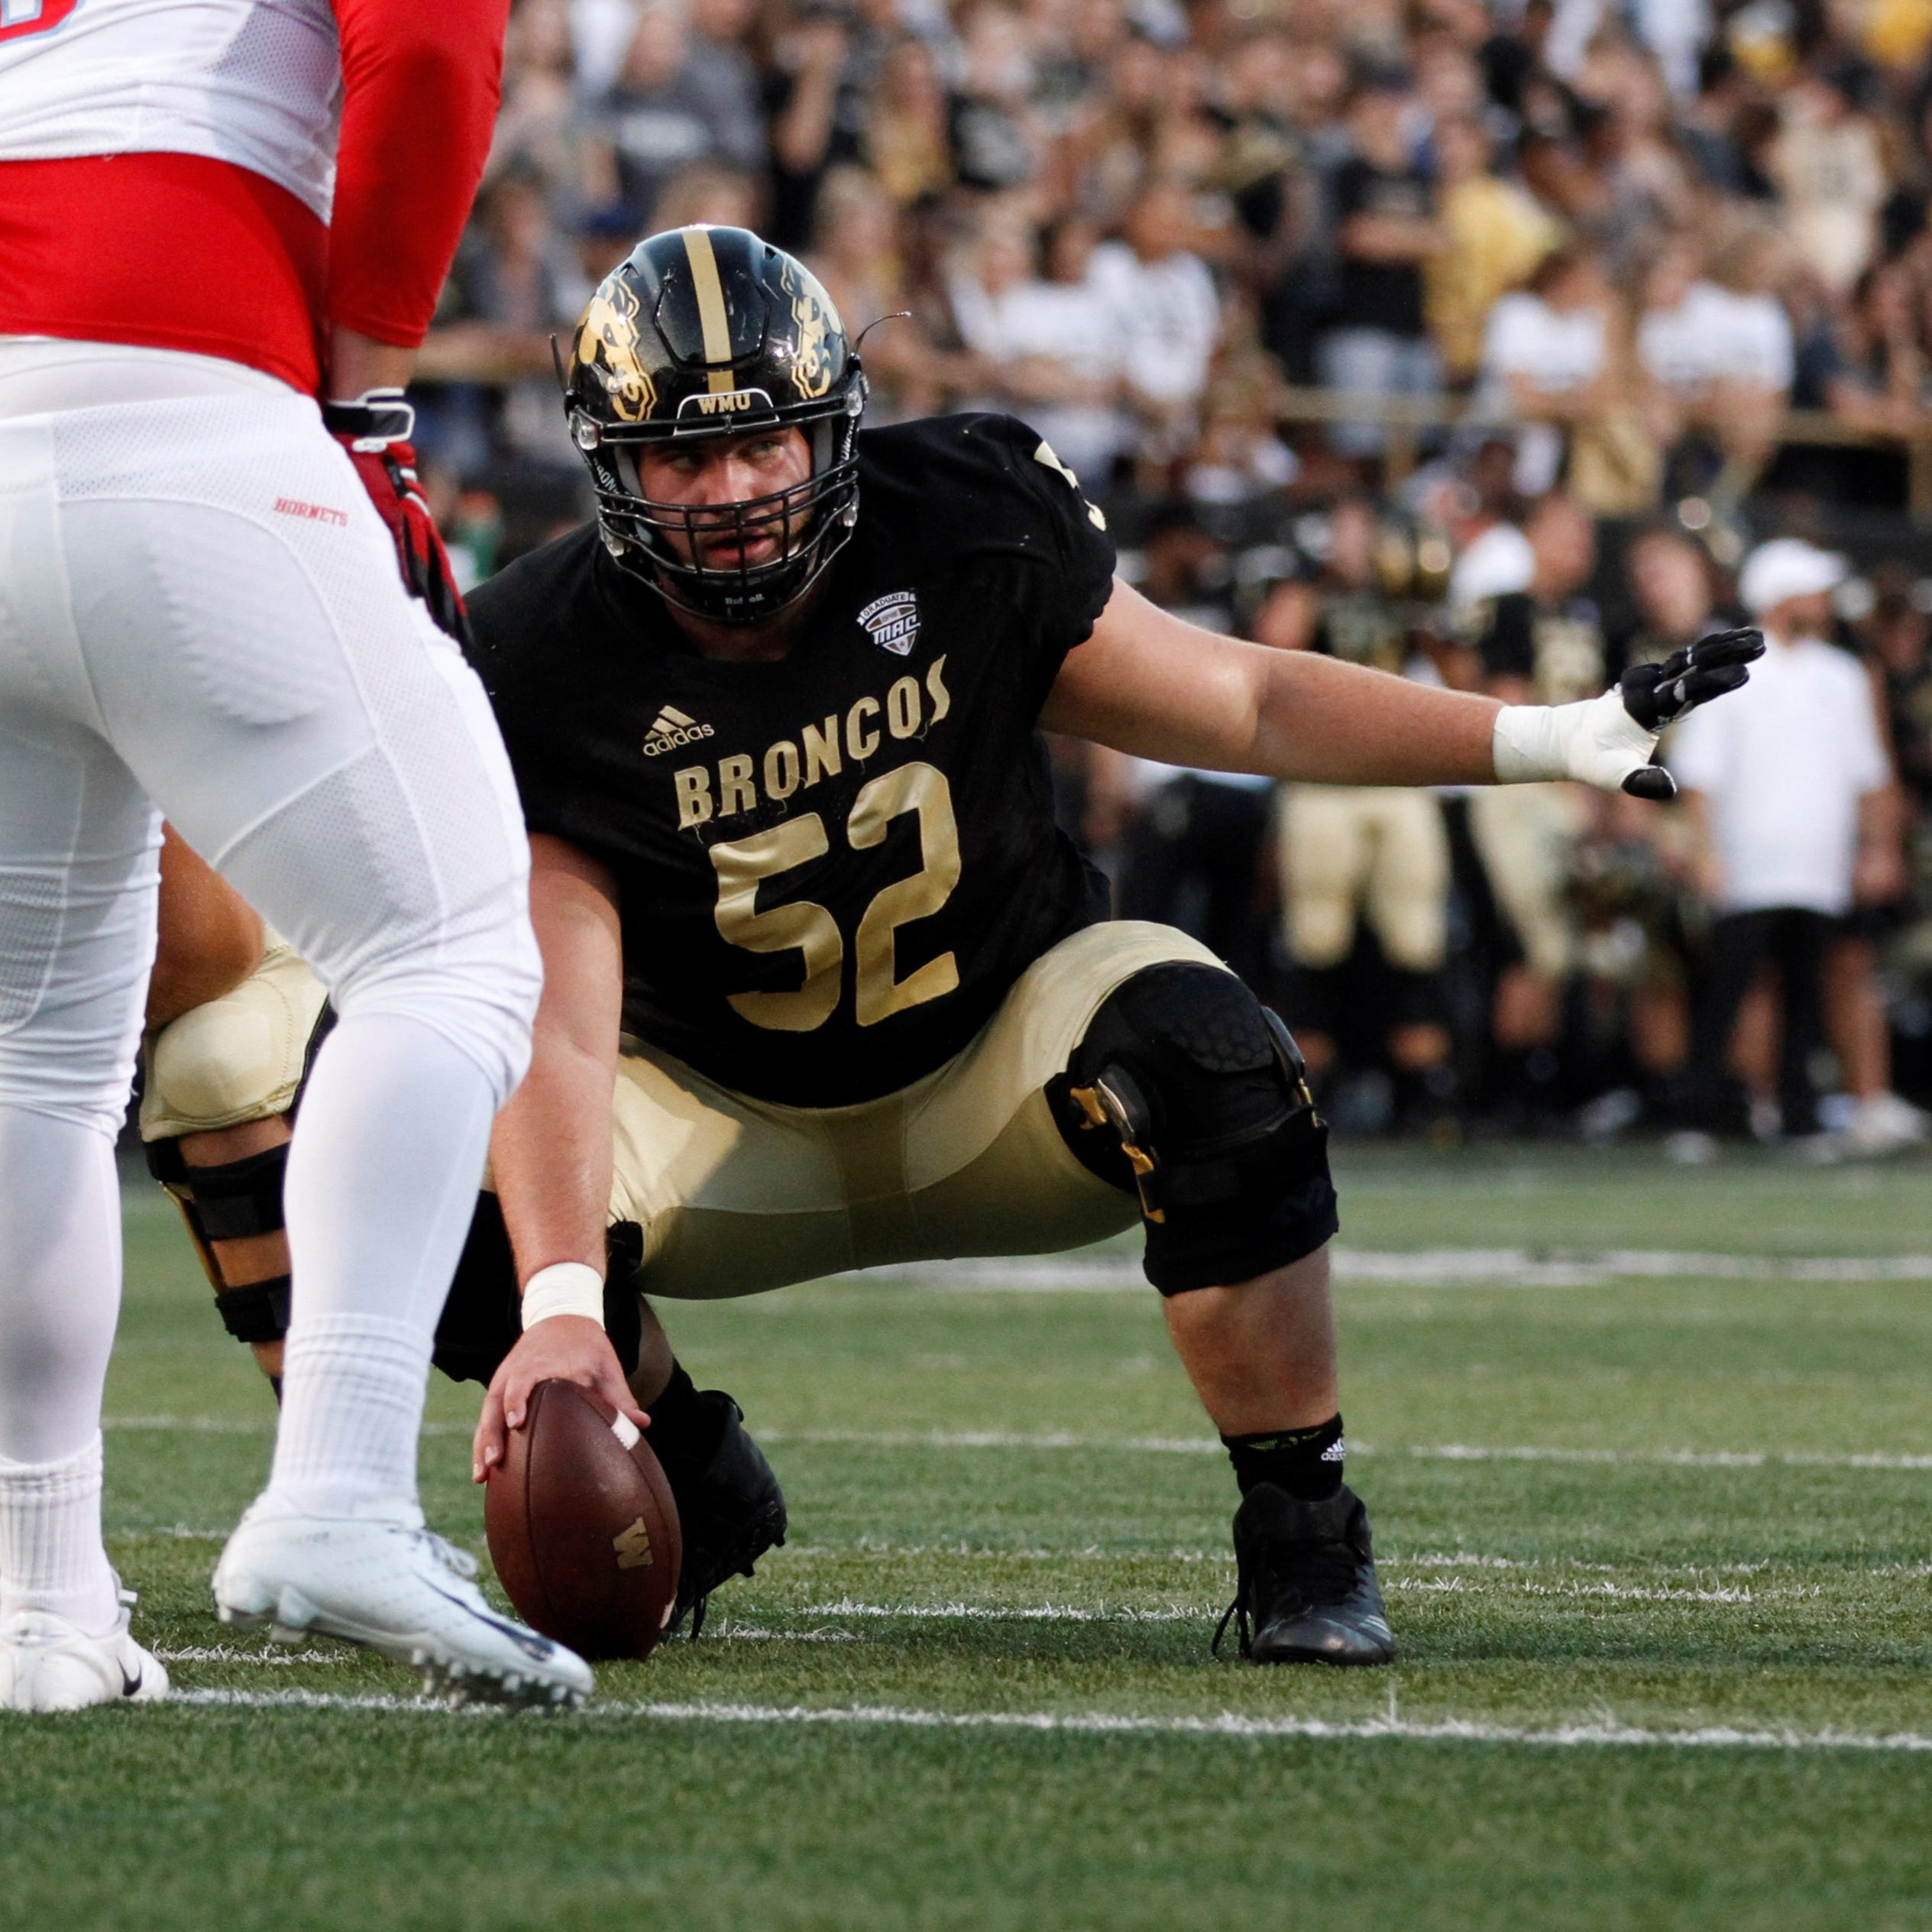 WMU's John Keenoy signs as undrafted free agent with Minnesota Vikings